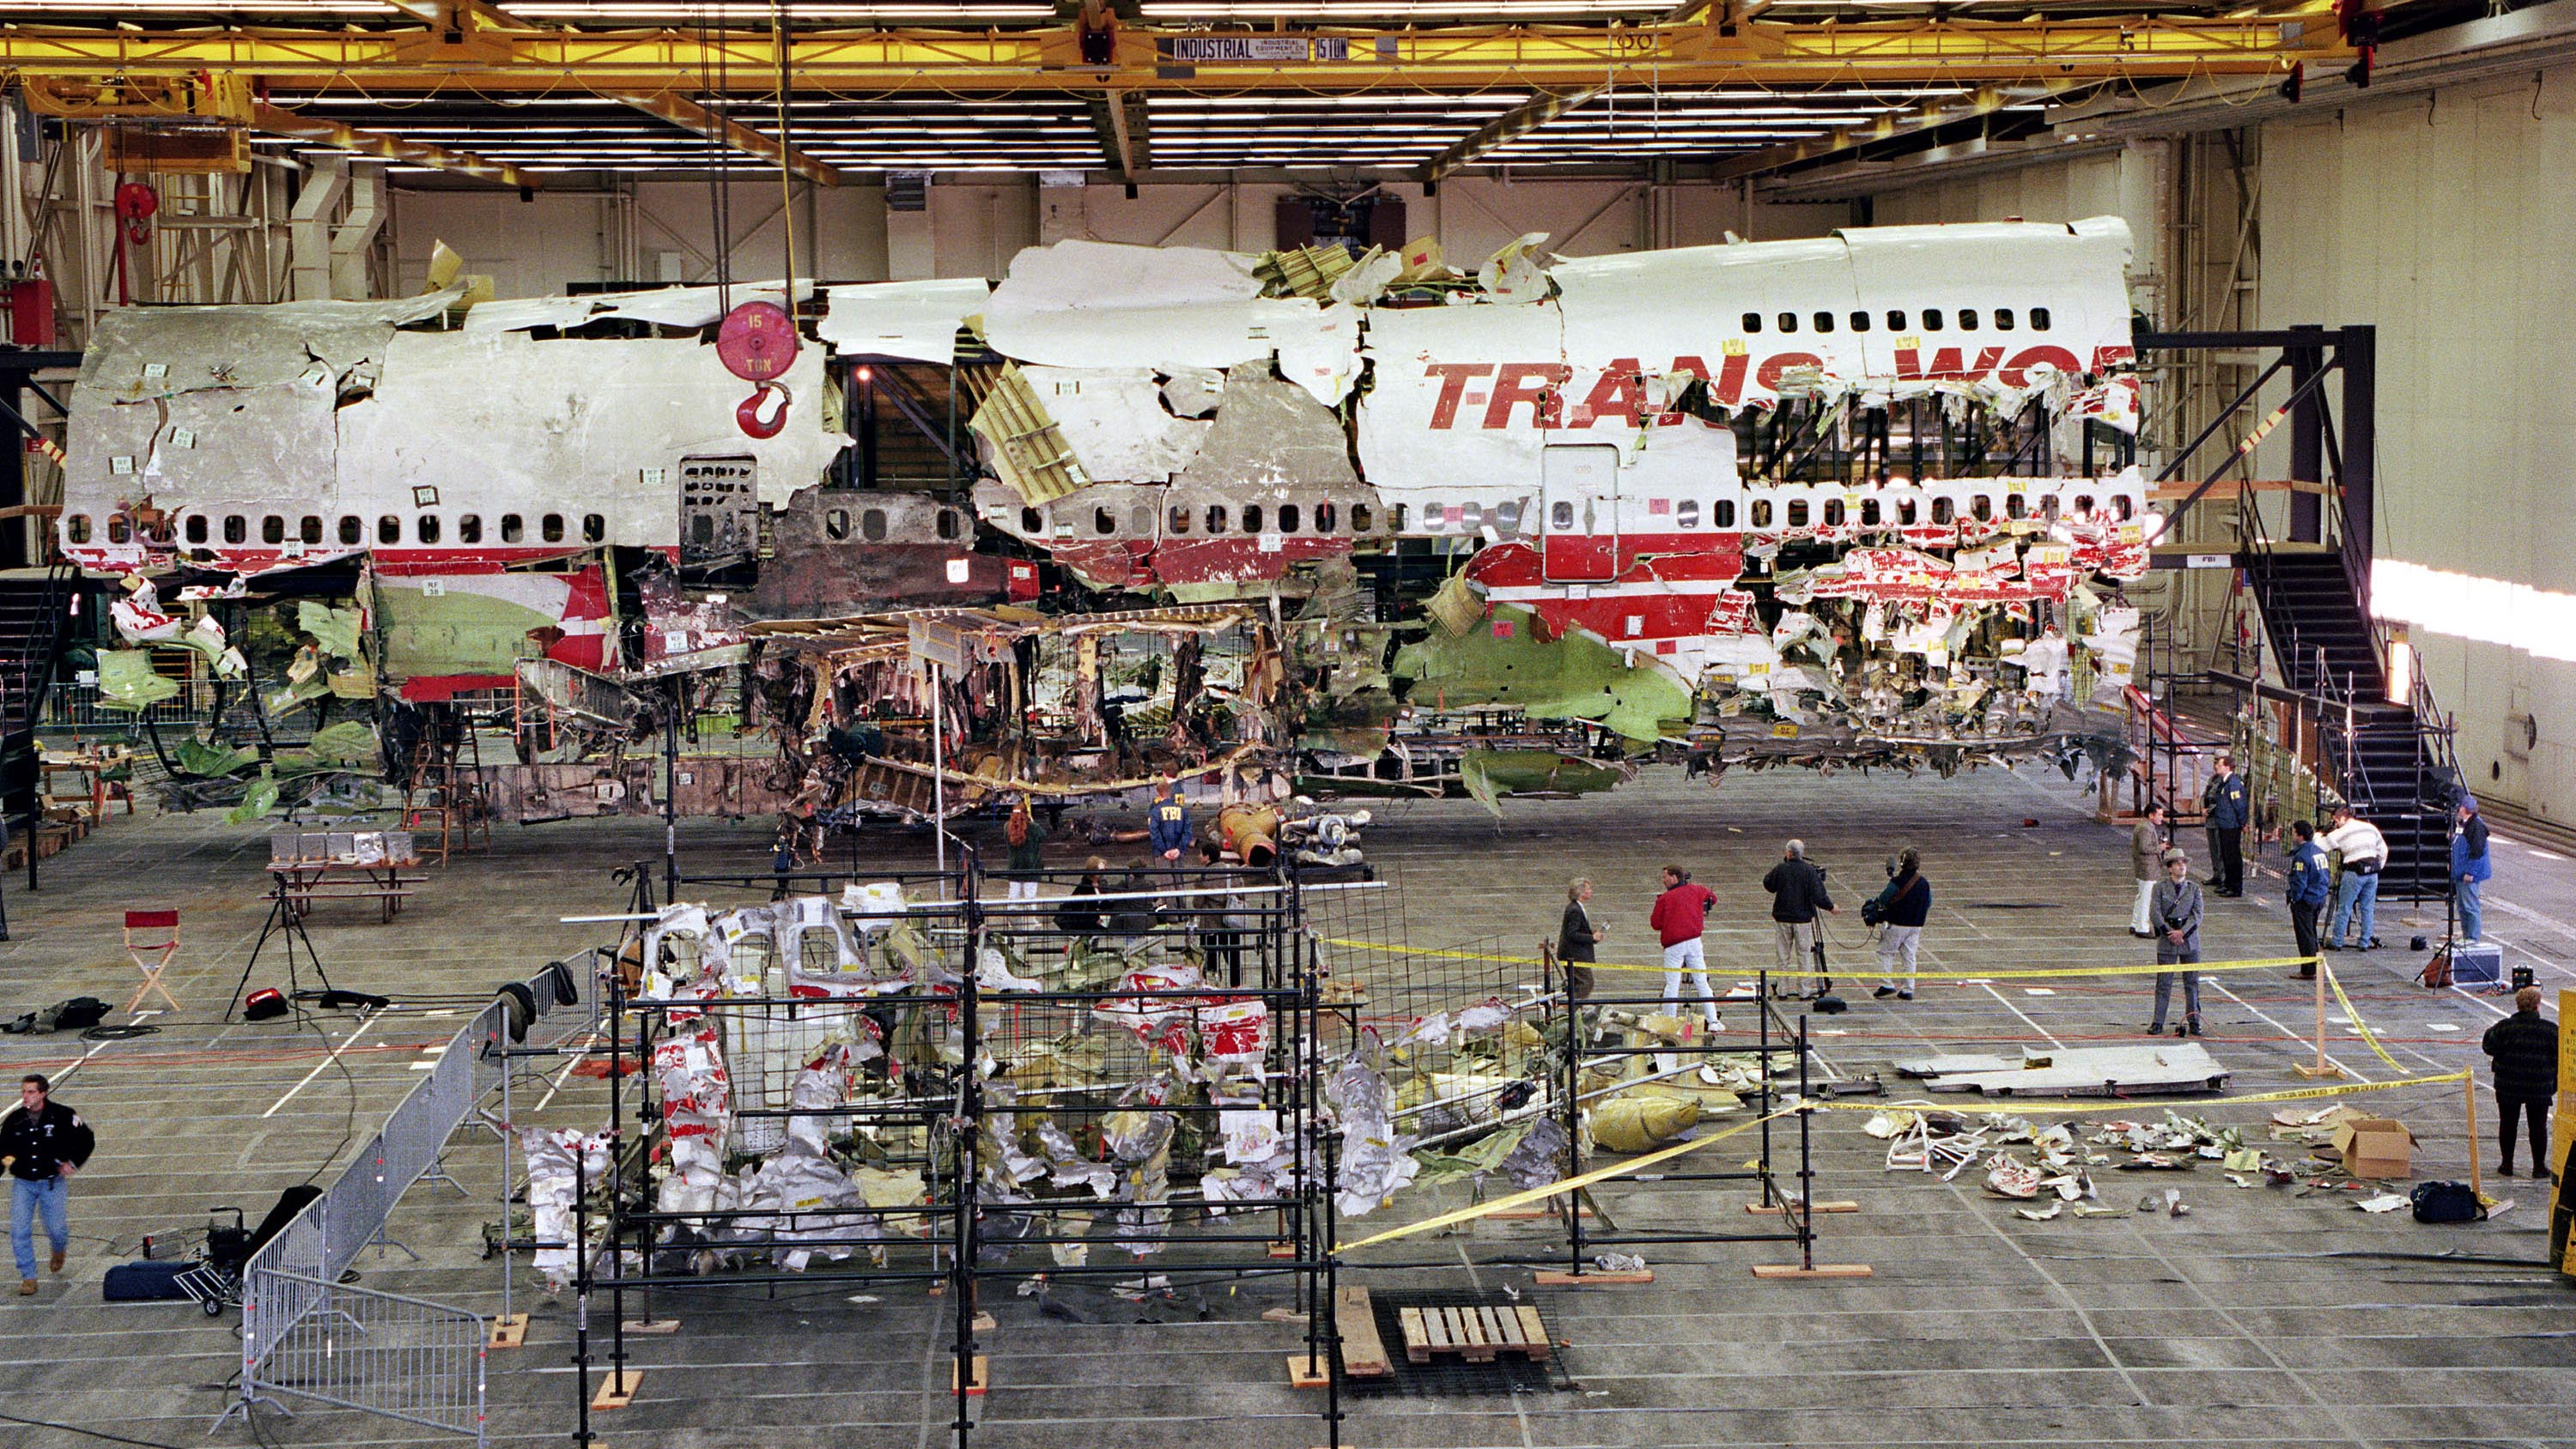 Wreckage from TWA Flight 800 to be destroyed years after explosion